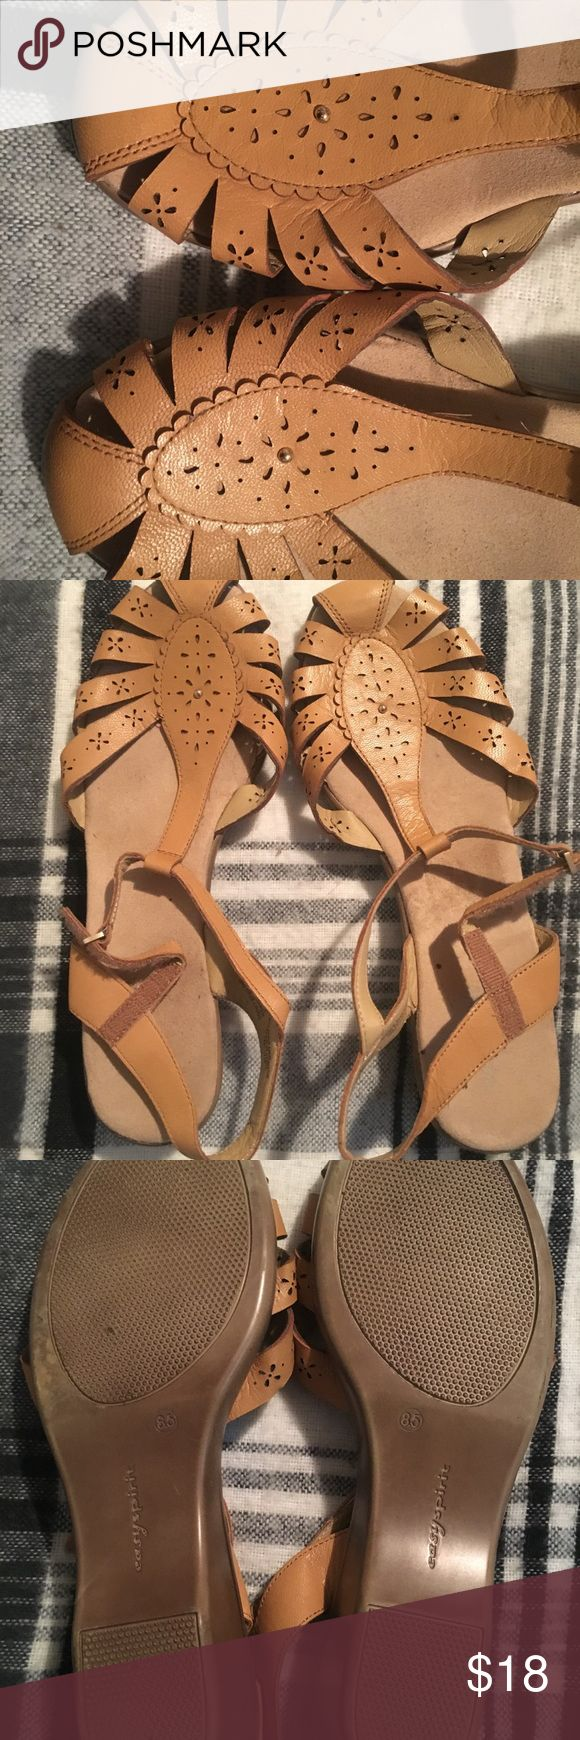 Easy Spirit  sandal Mustard yellow, super cute Easy Spirit sandals Easy Spirit Shoes Sandals